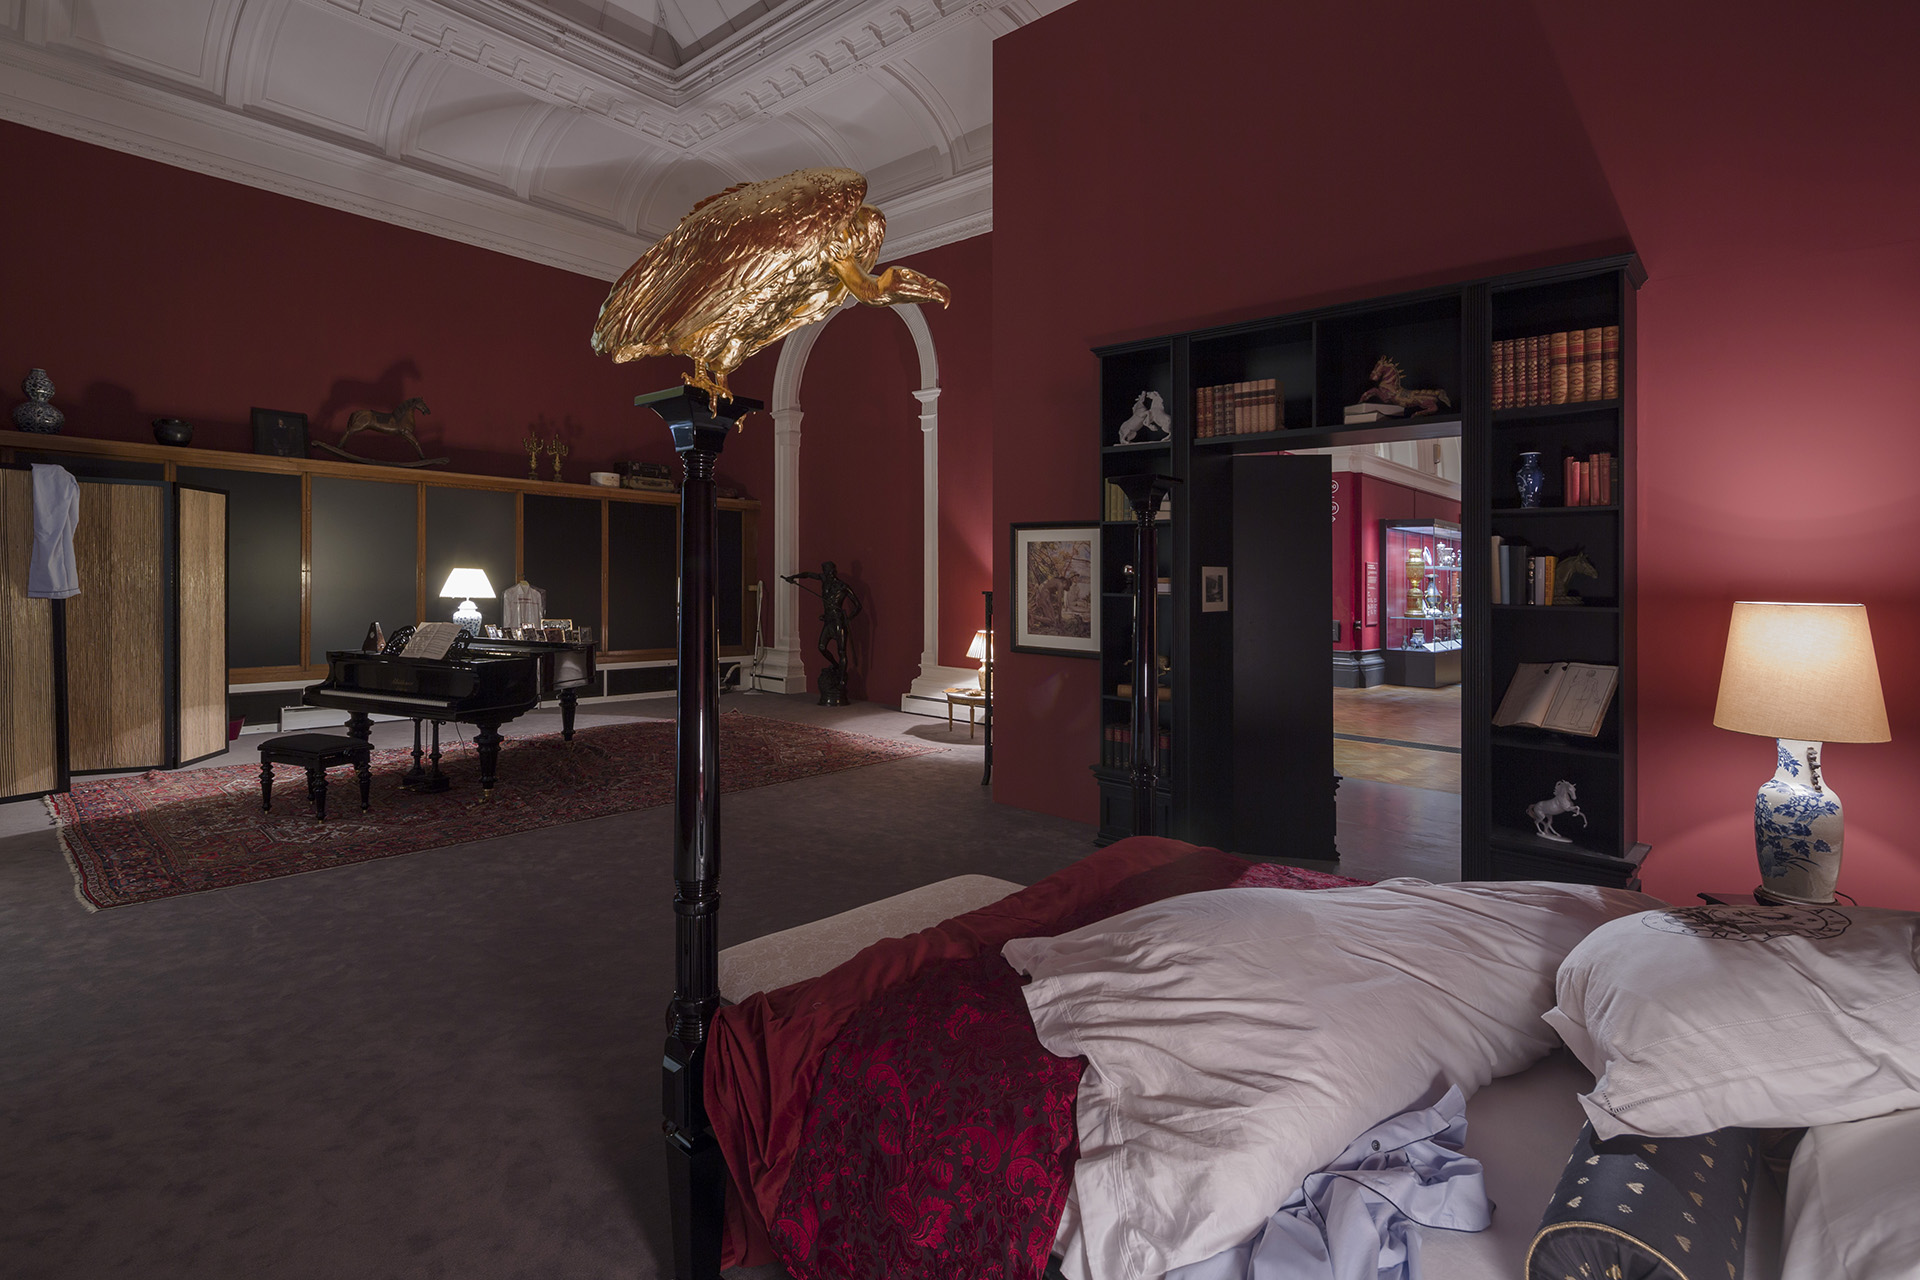 Elmgreen & Dragset's Installation At The V&A, London